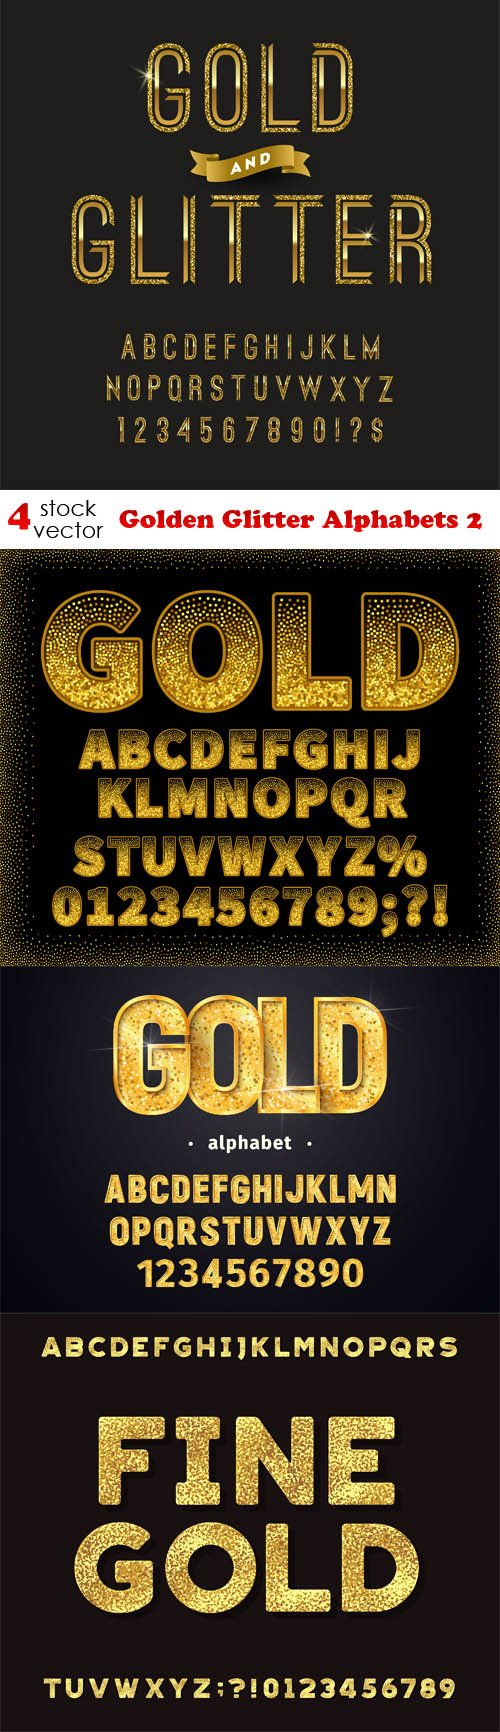 Vectors - Golden Glitter Alphabets 2